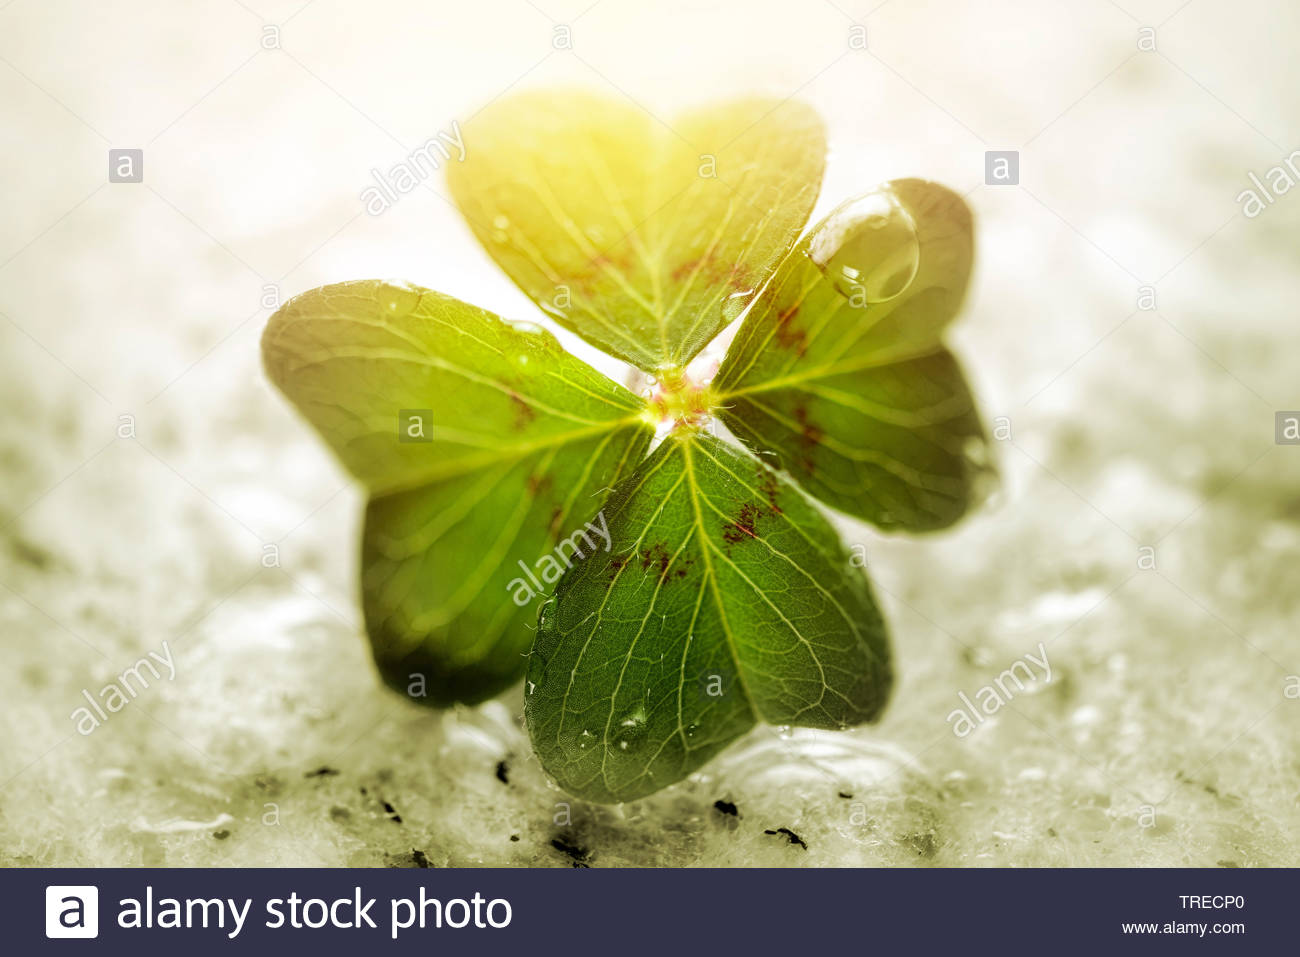 four-leafed clover (Oxalis tetraphylla, Oxalis deppei), Iron Cross, lucky clover, Germany Stock Photo